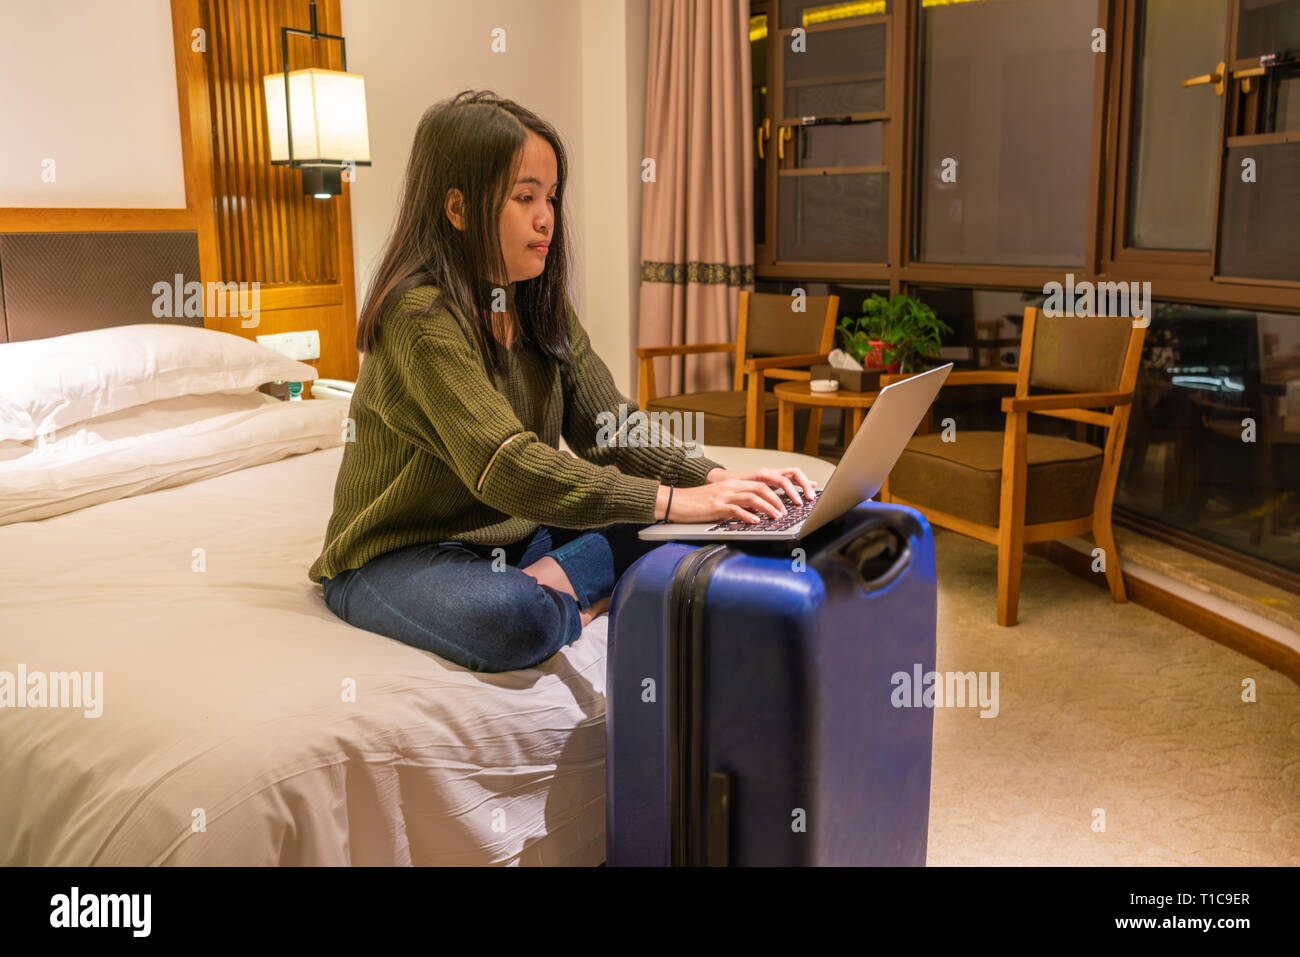 Asian businesswoman working on laptop in hotel room - Stock Image